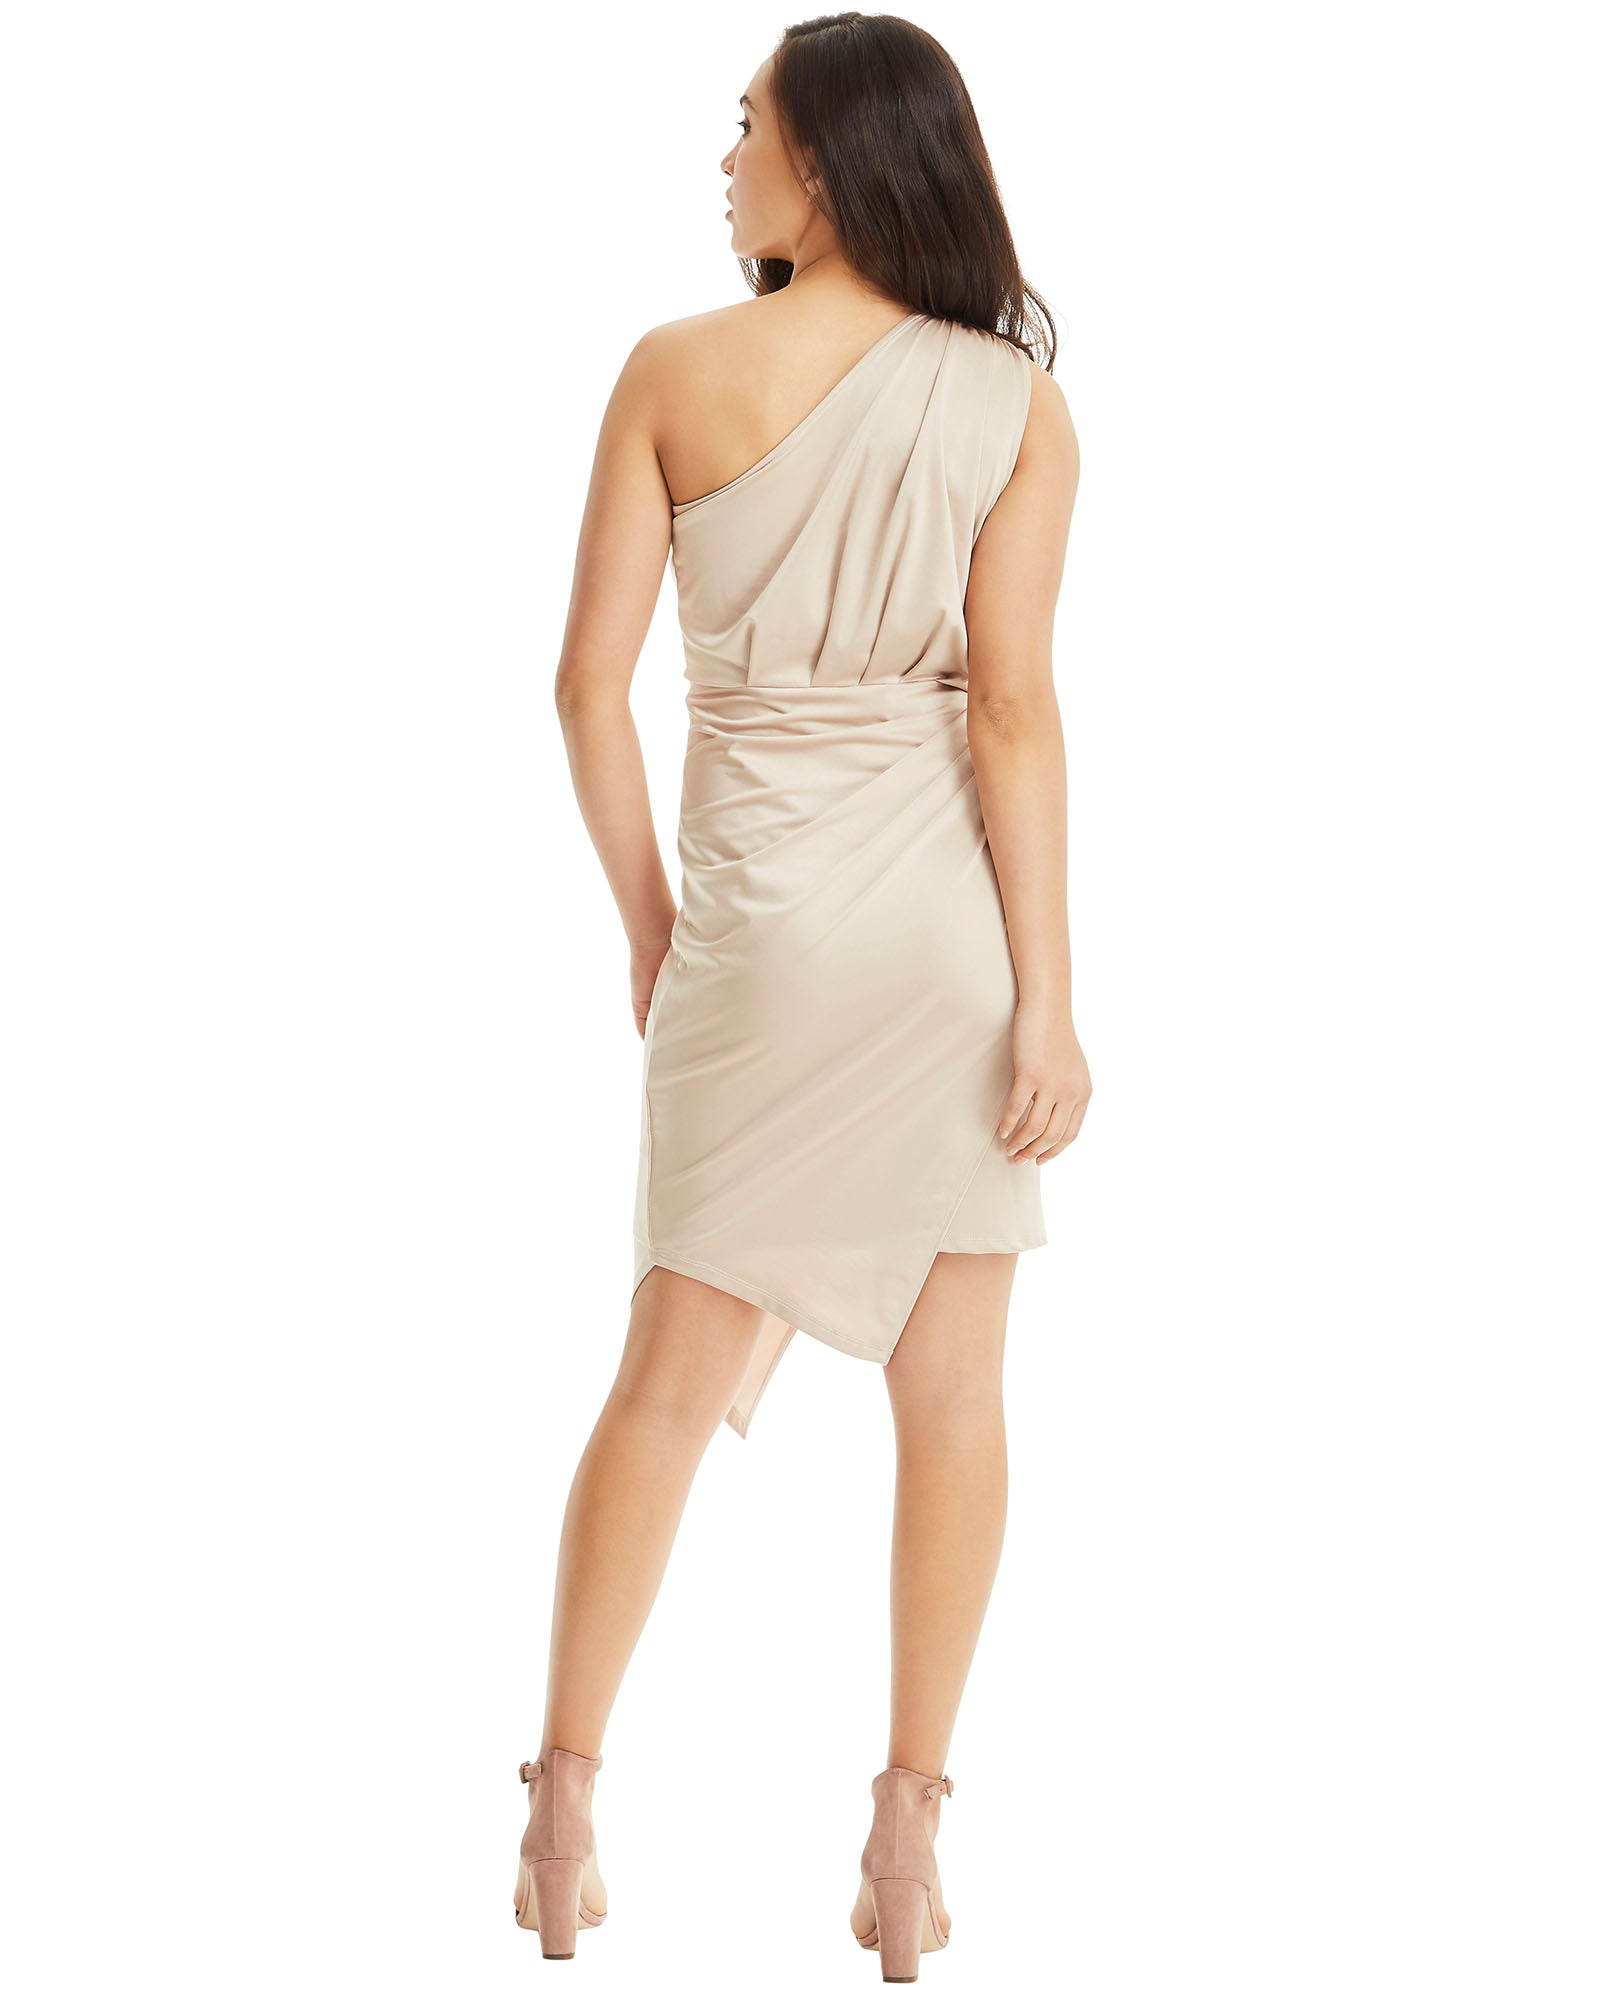 SKIVA one shoulder dress asymmetrical gold stretch fabric slip on pull on knee length midi work party cocktail